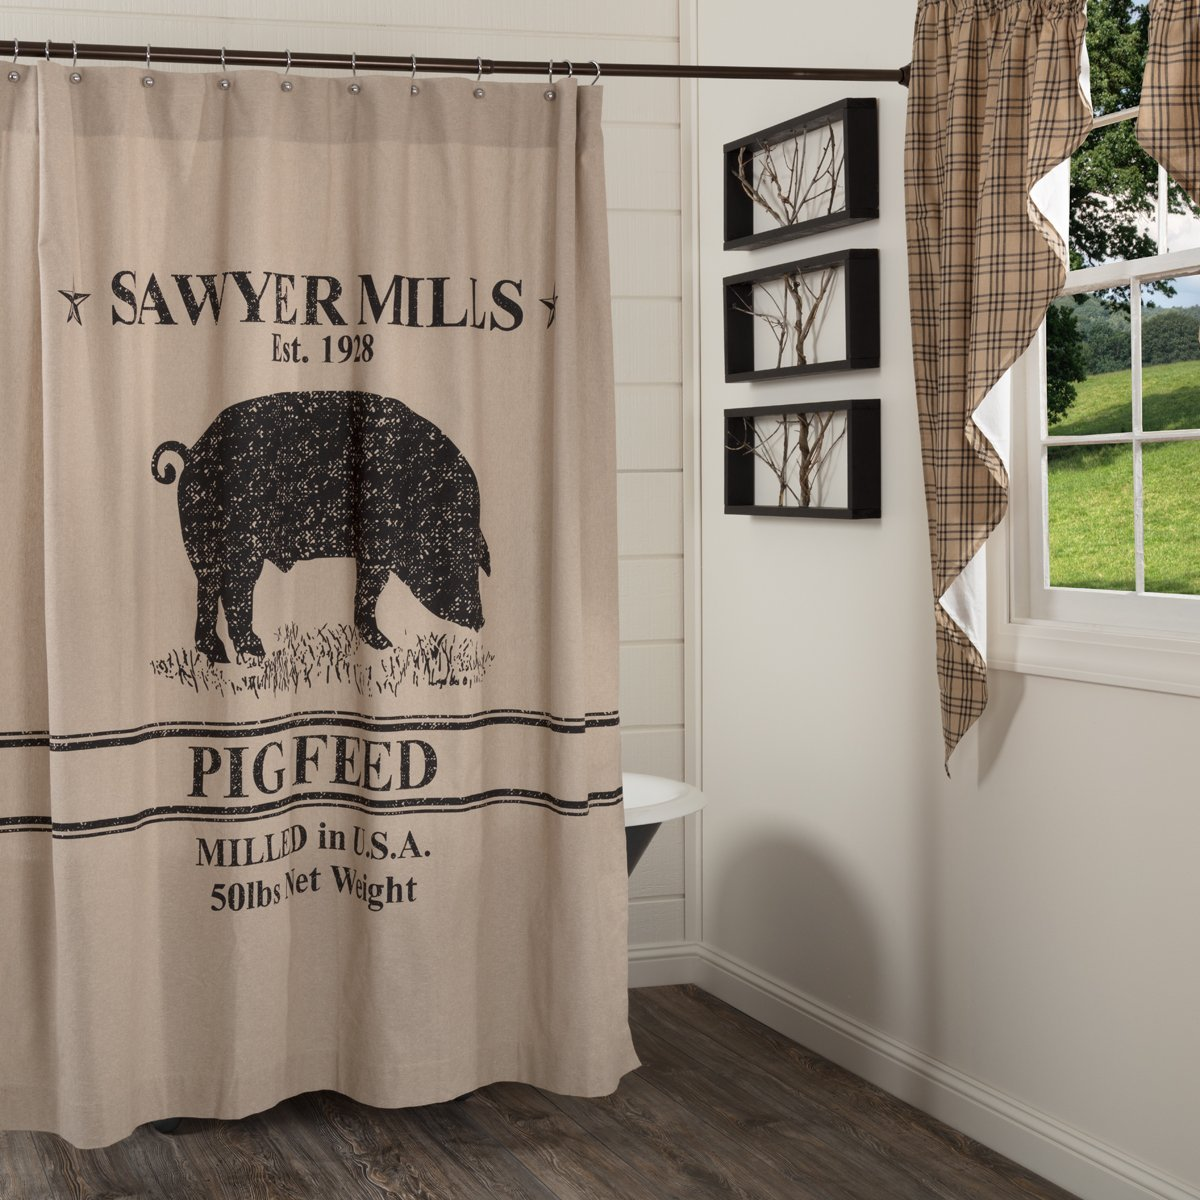 Sawyer Mill Charcoal Pig Shower Curtain.